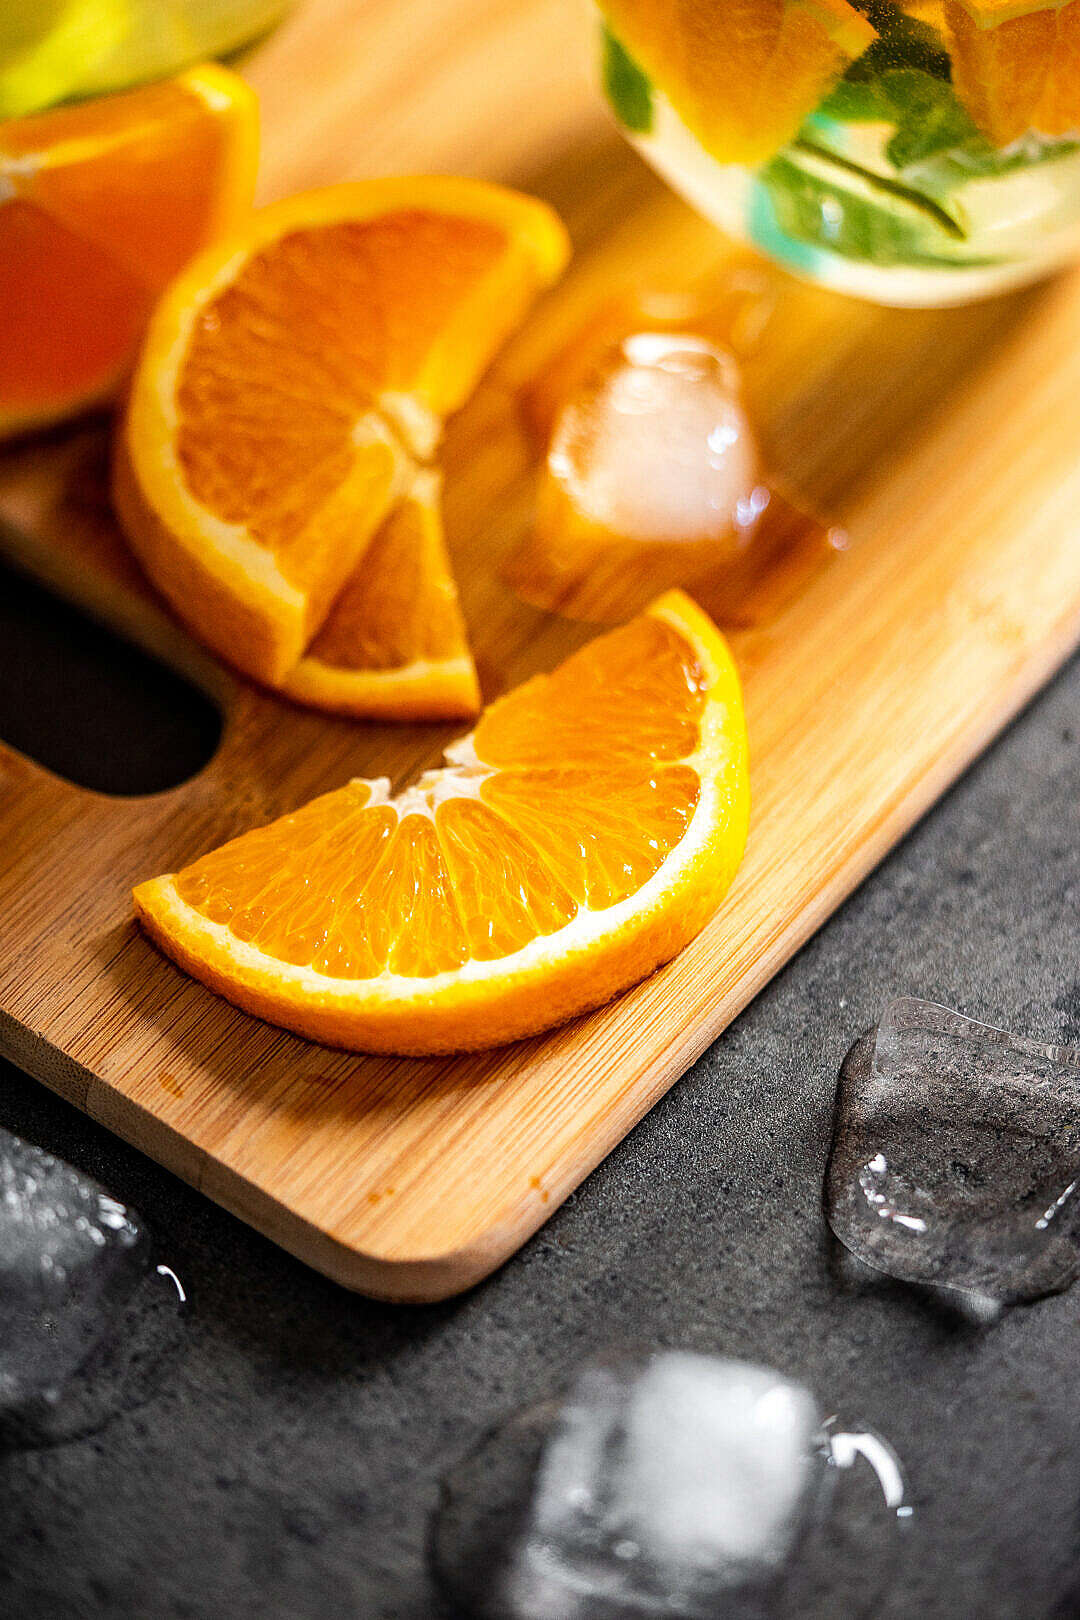 Download Sliced Orange on The Cutting Board FREE Stock Photo